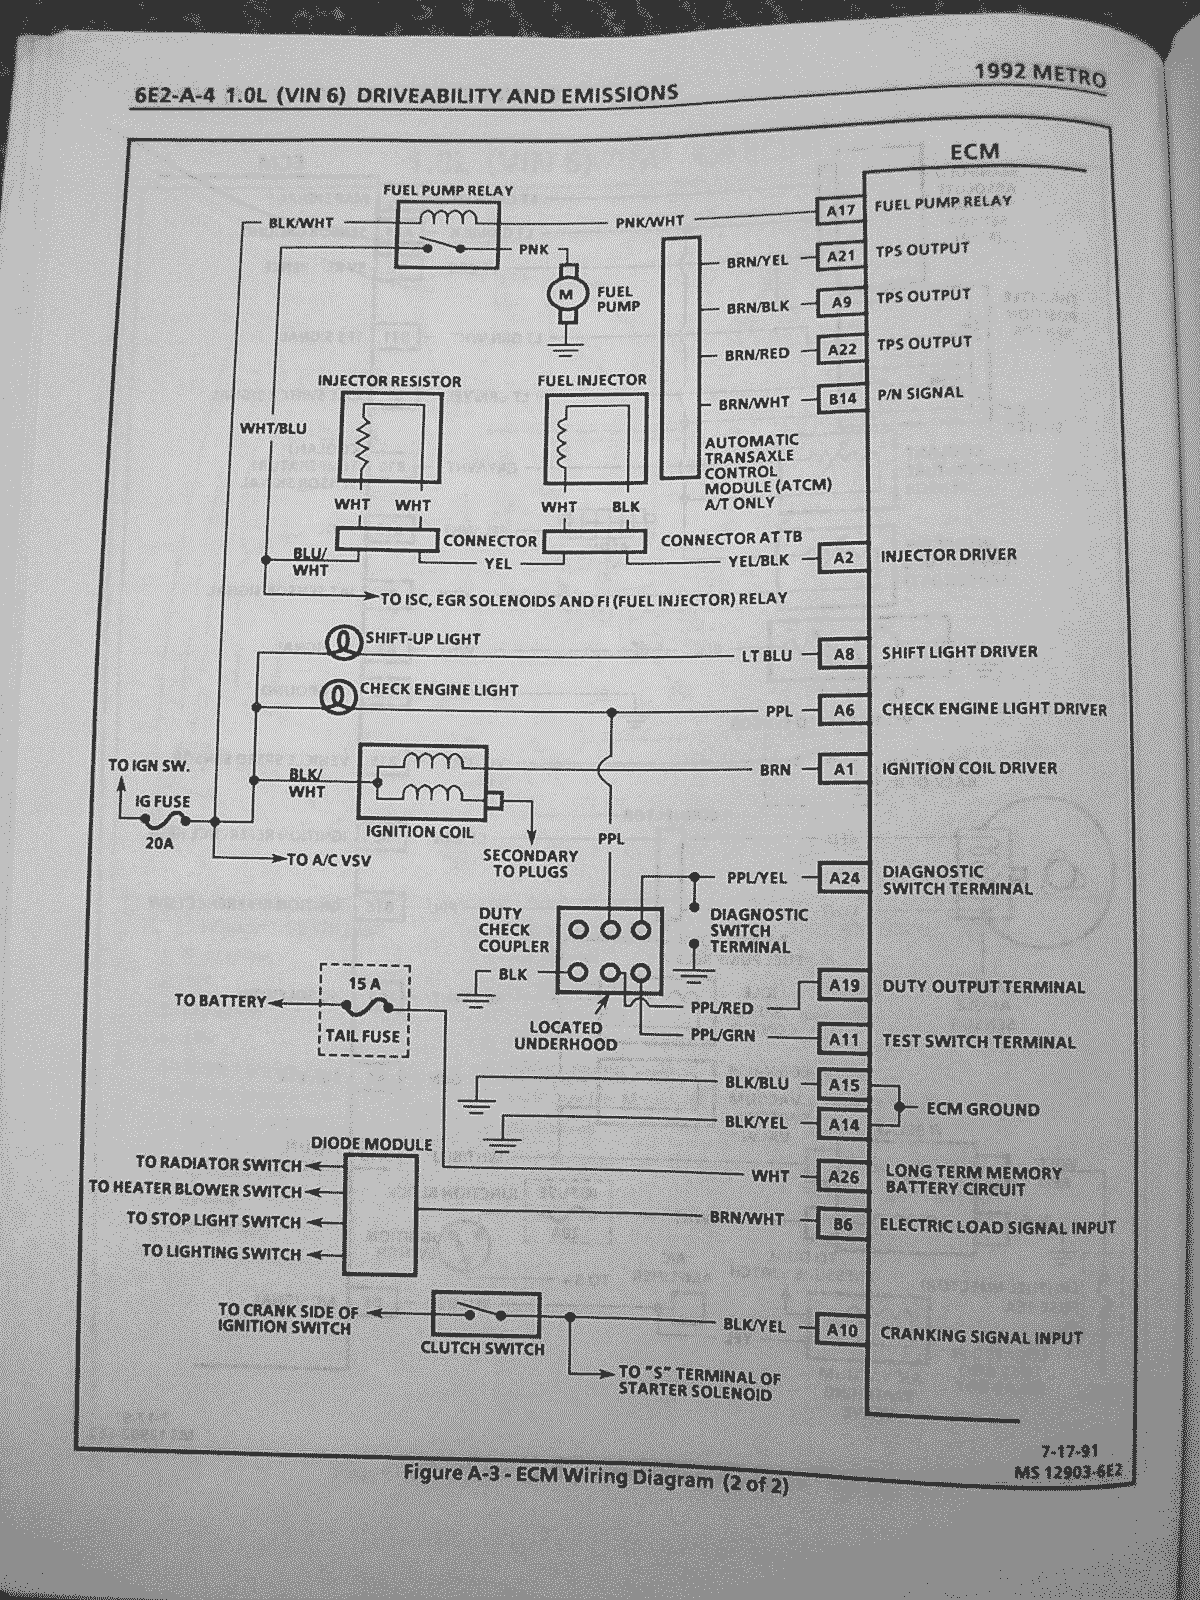 6e2 a 4 geo metro and suzuki swift wiring diagrams metroxfi com diagram of a fuse box on a geo metro 91 at bakdesigns.co